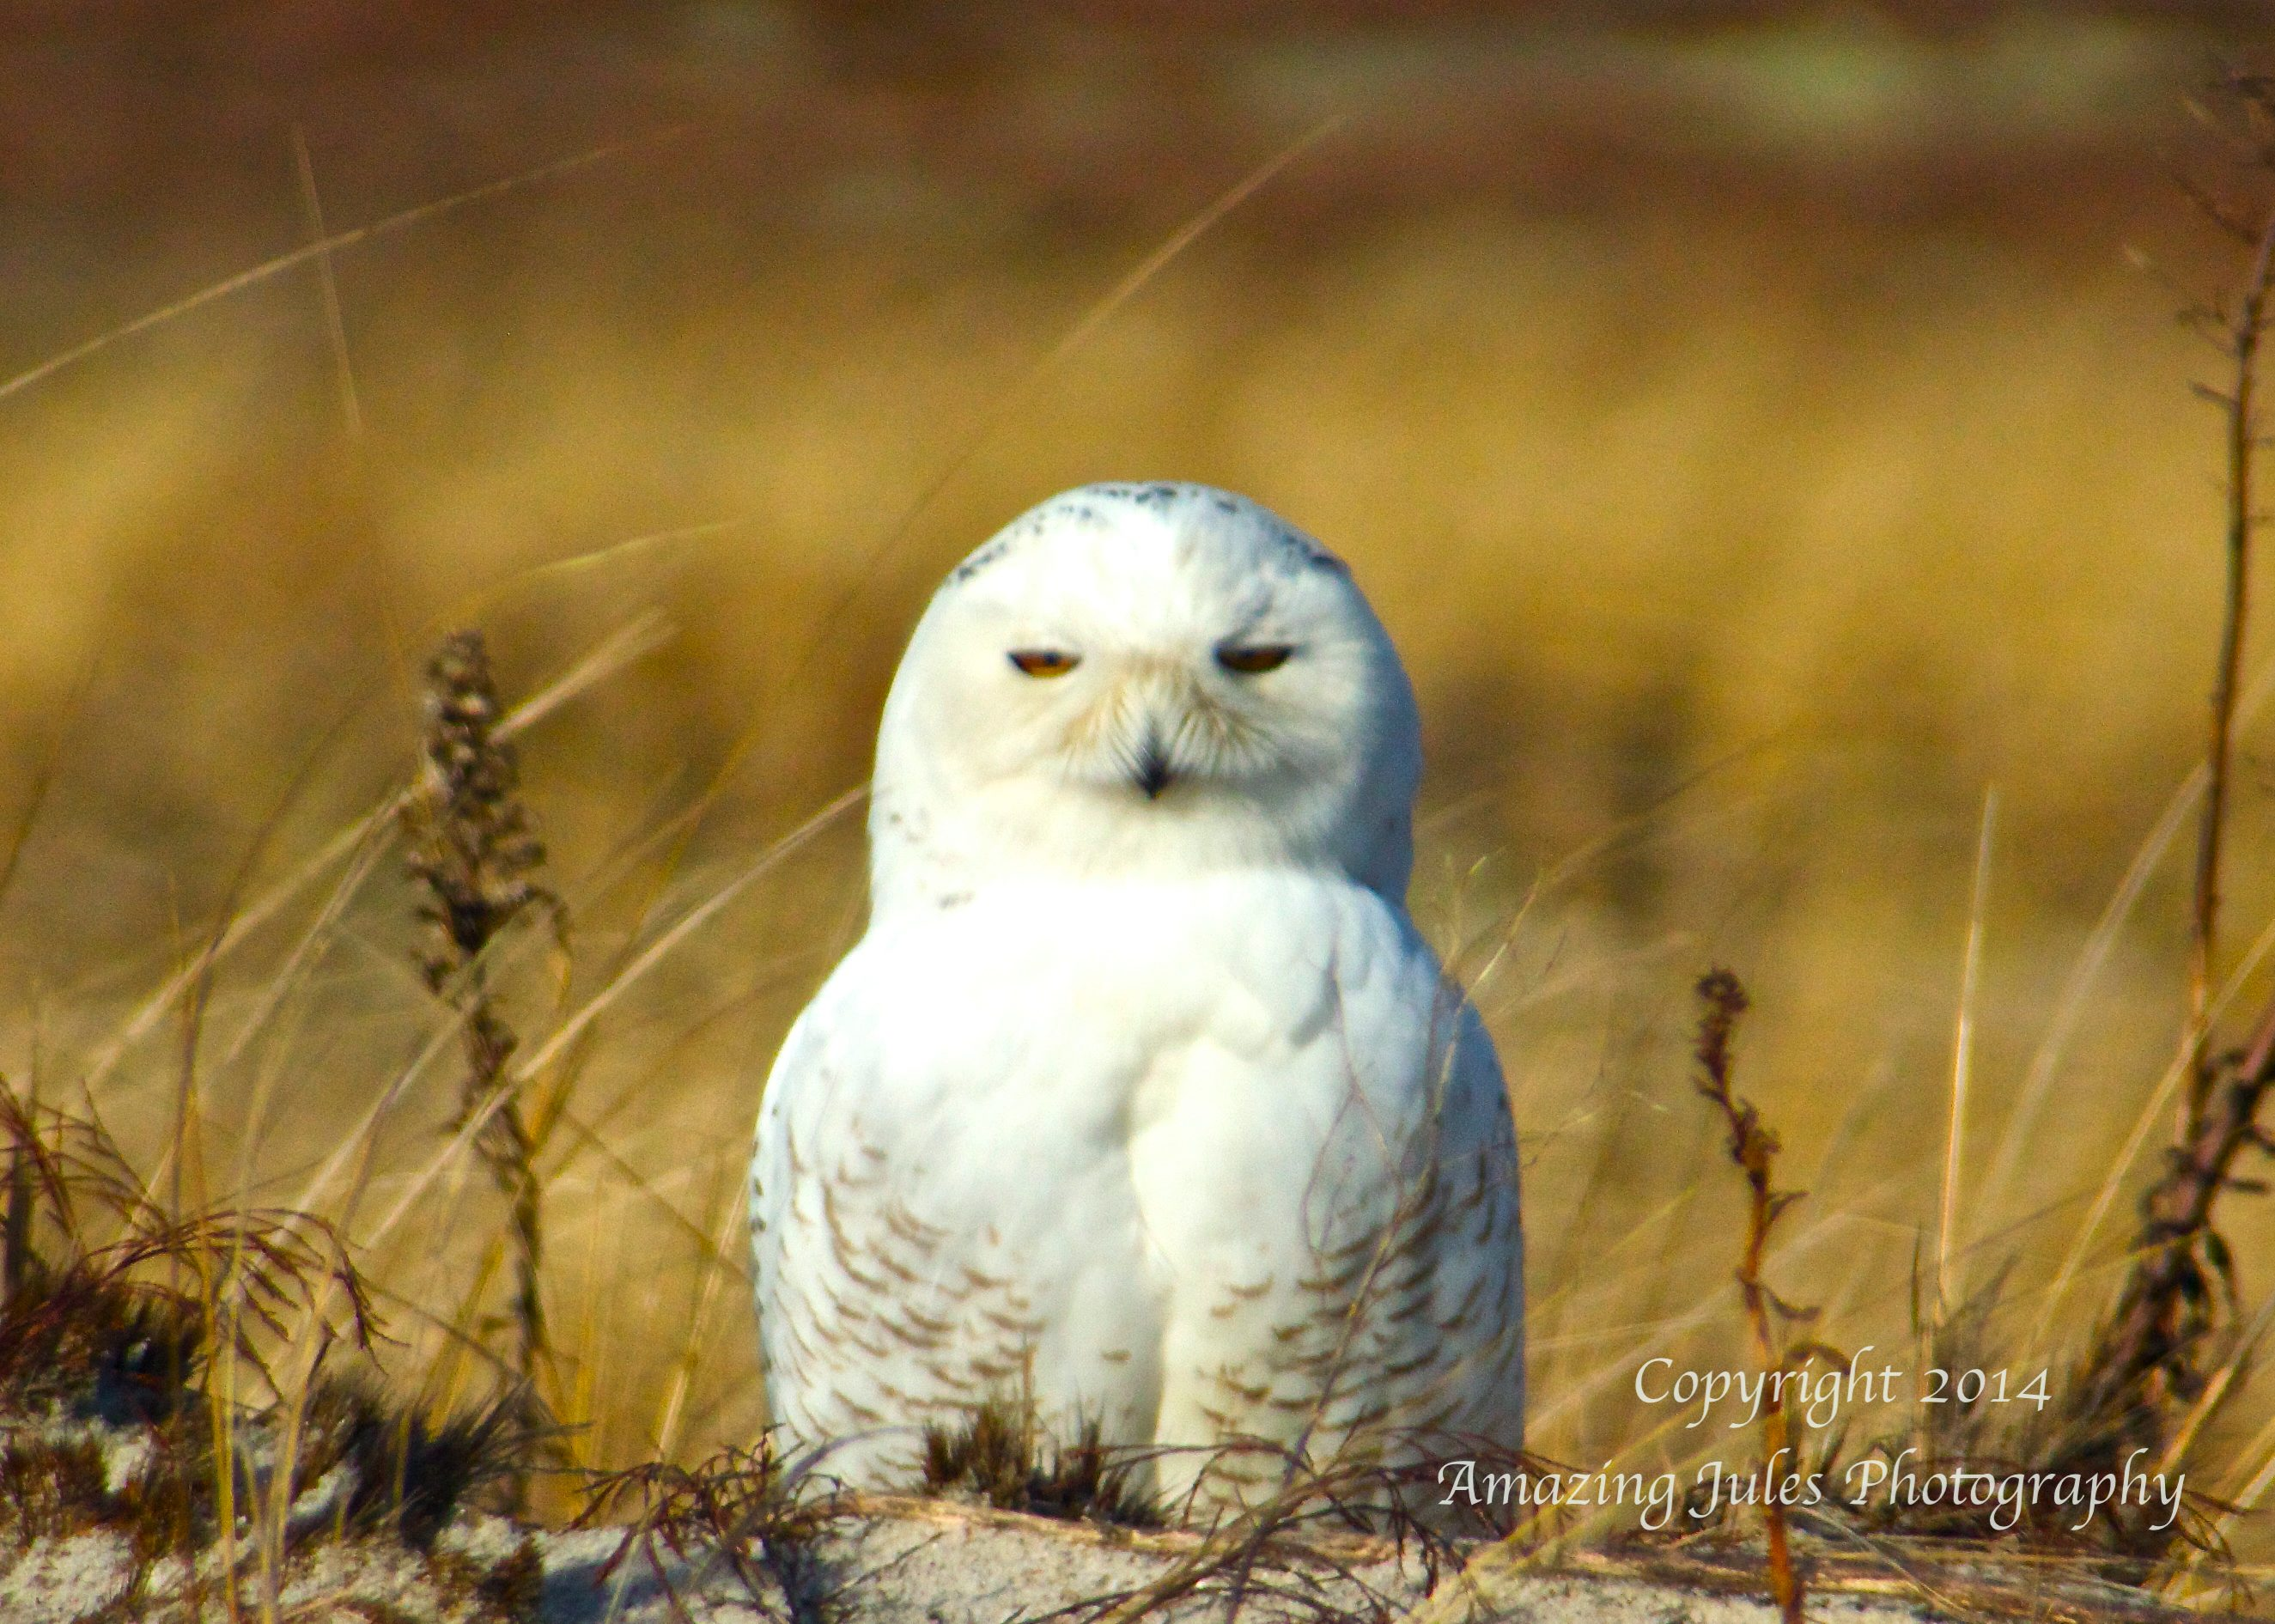 Snowy White Owl in Beach Grass